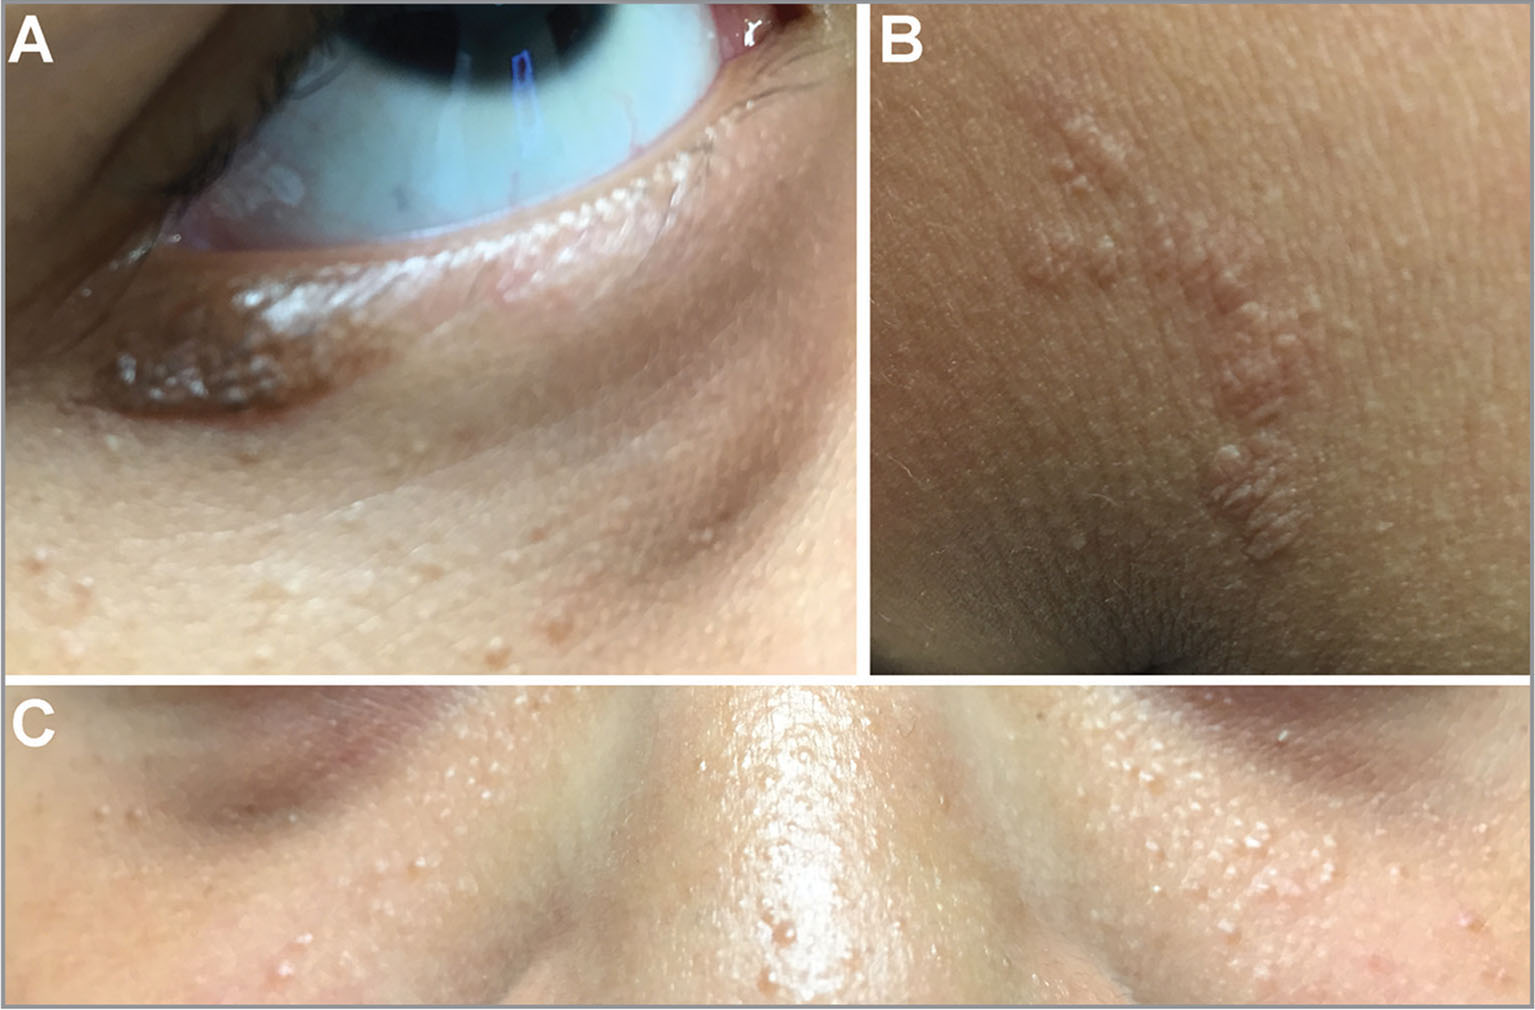 Cutaneous findings consistent with tuberous sclerosis complex. (A) Subtle pigmented lesion along the right lower lid consistent with shagreen patch. (B) Subtle pigmented lesion on right upper chest consistent with shagreen patch. (C) Subtle, acne-like skin lesions on cheeks and nose consistent with adenoma sebaceum.